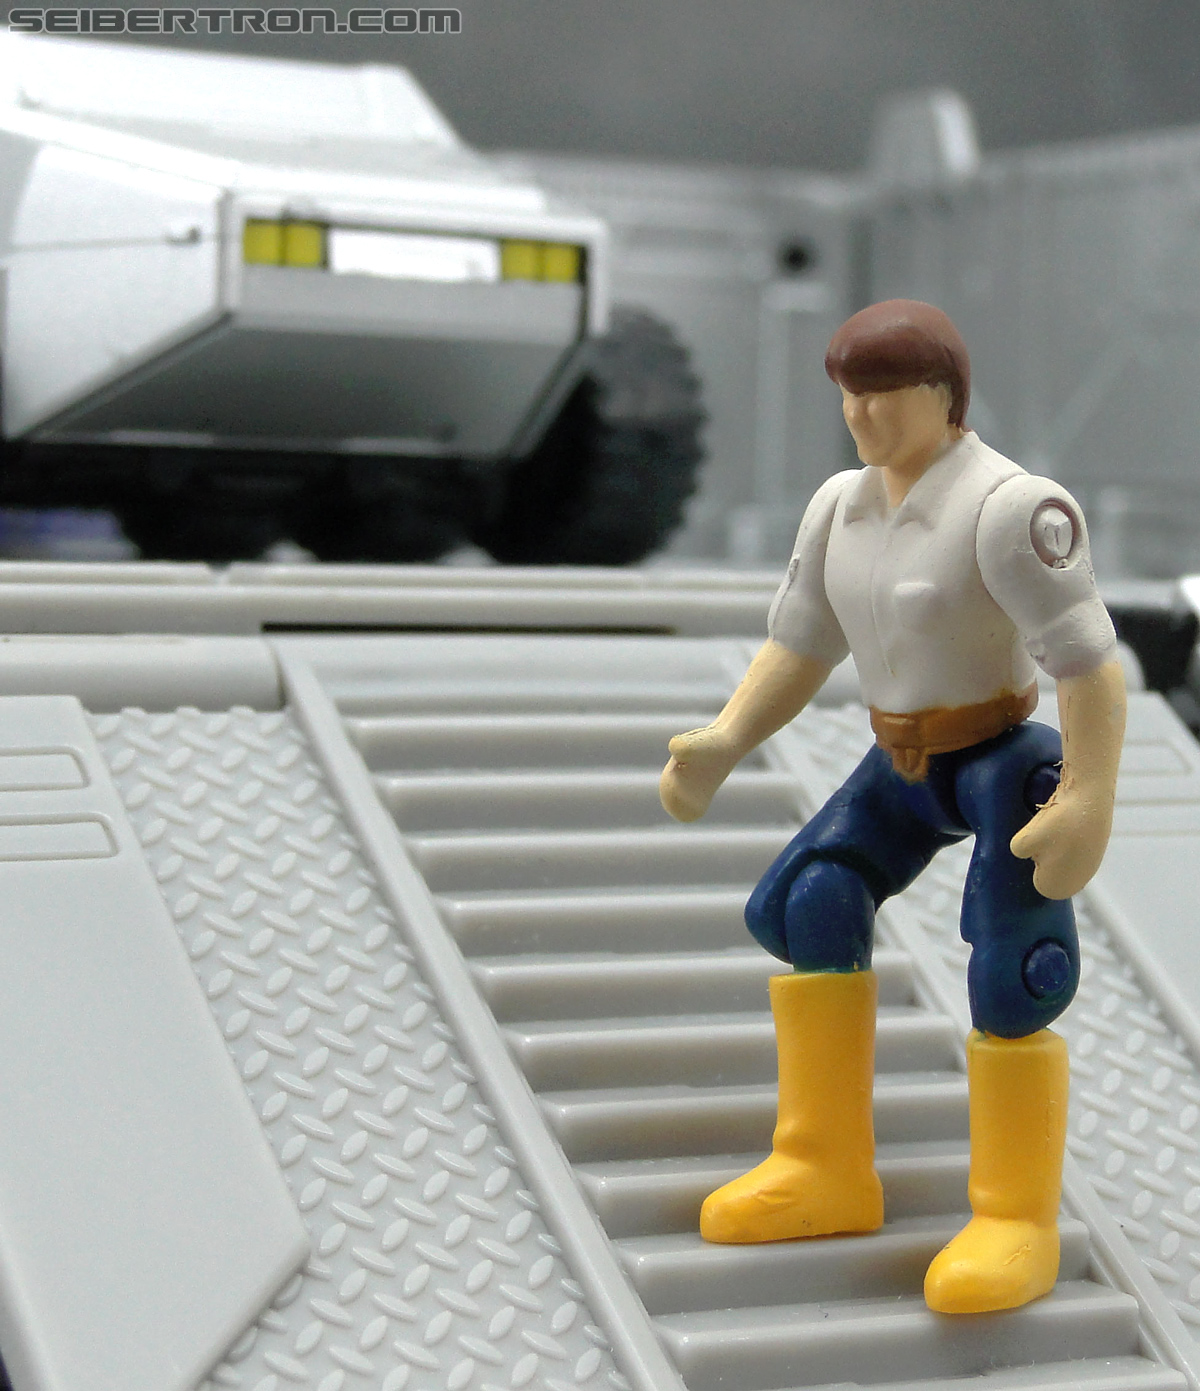 Transformers Masterpiece Spike Witwicky (Image #32 of 60)